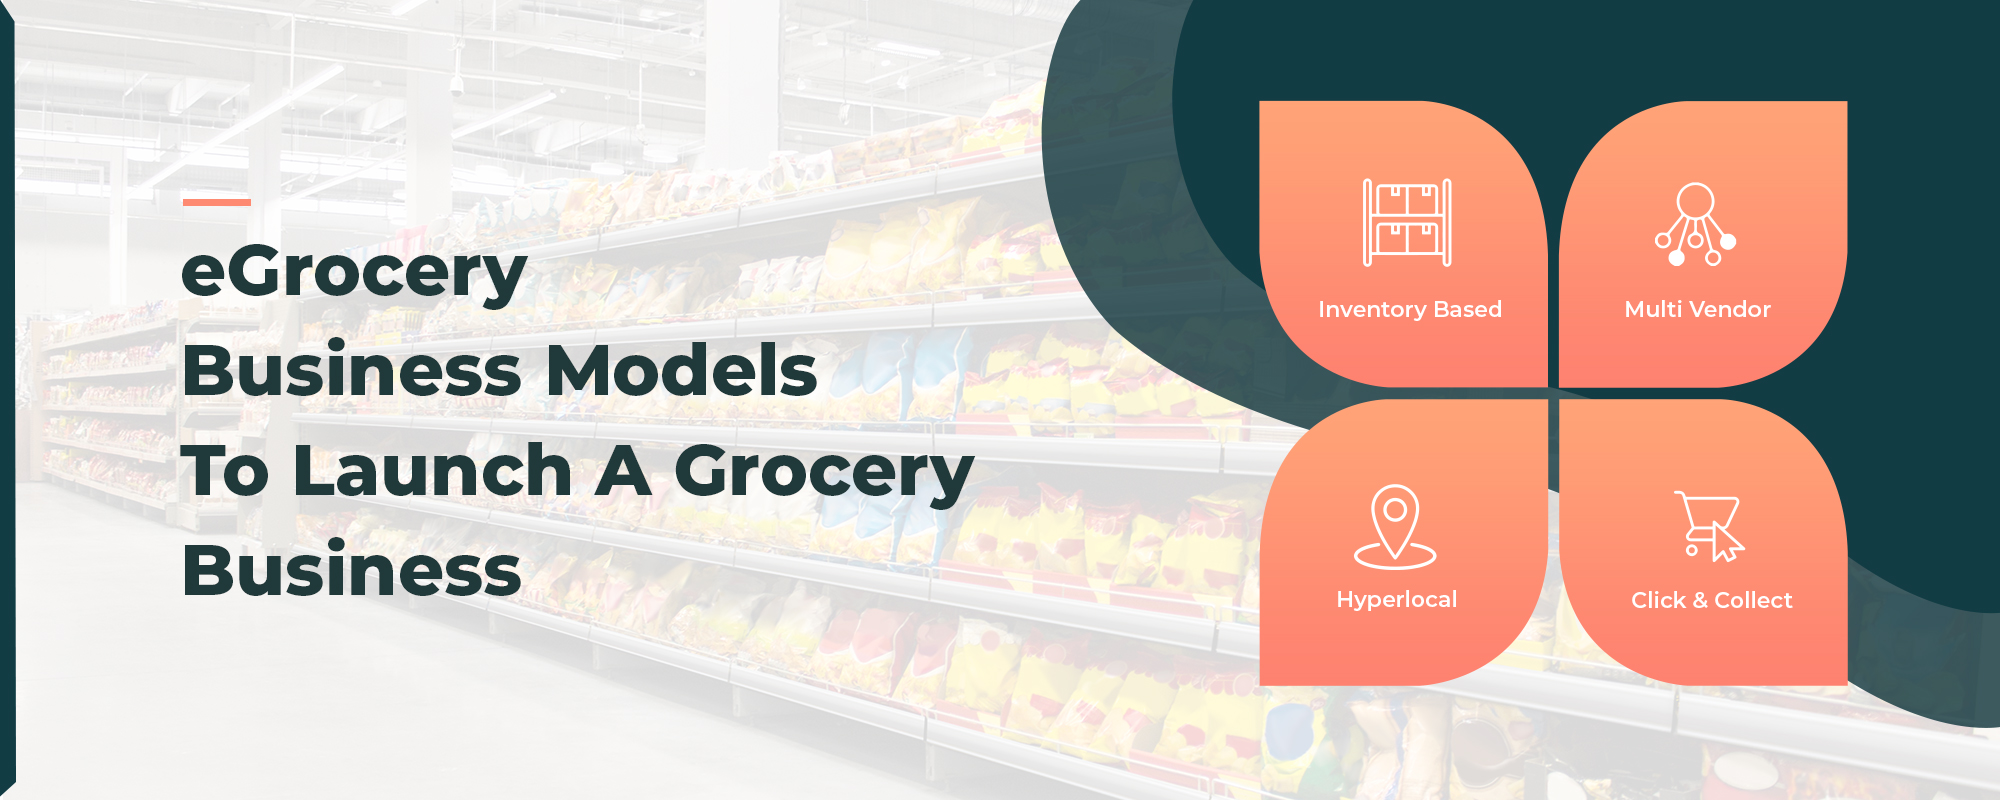 Different Business Models To Launch An Online Grocery Business